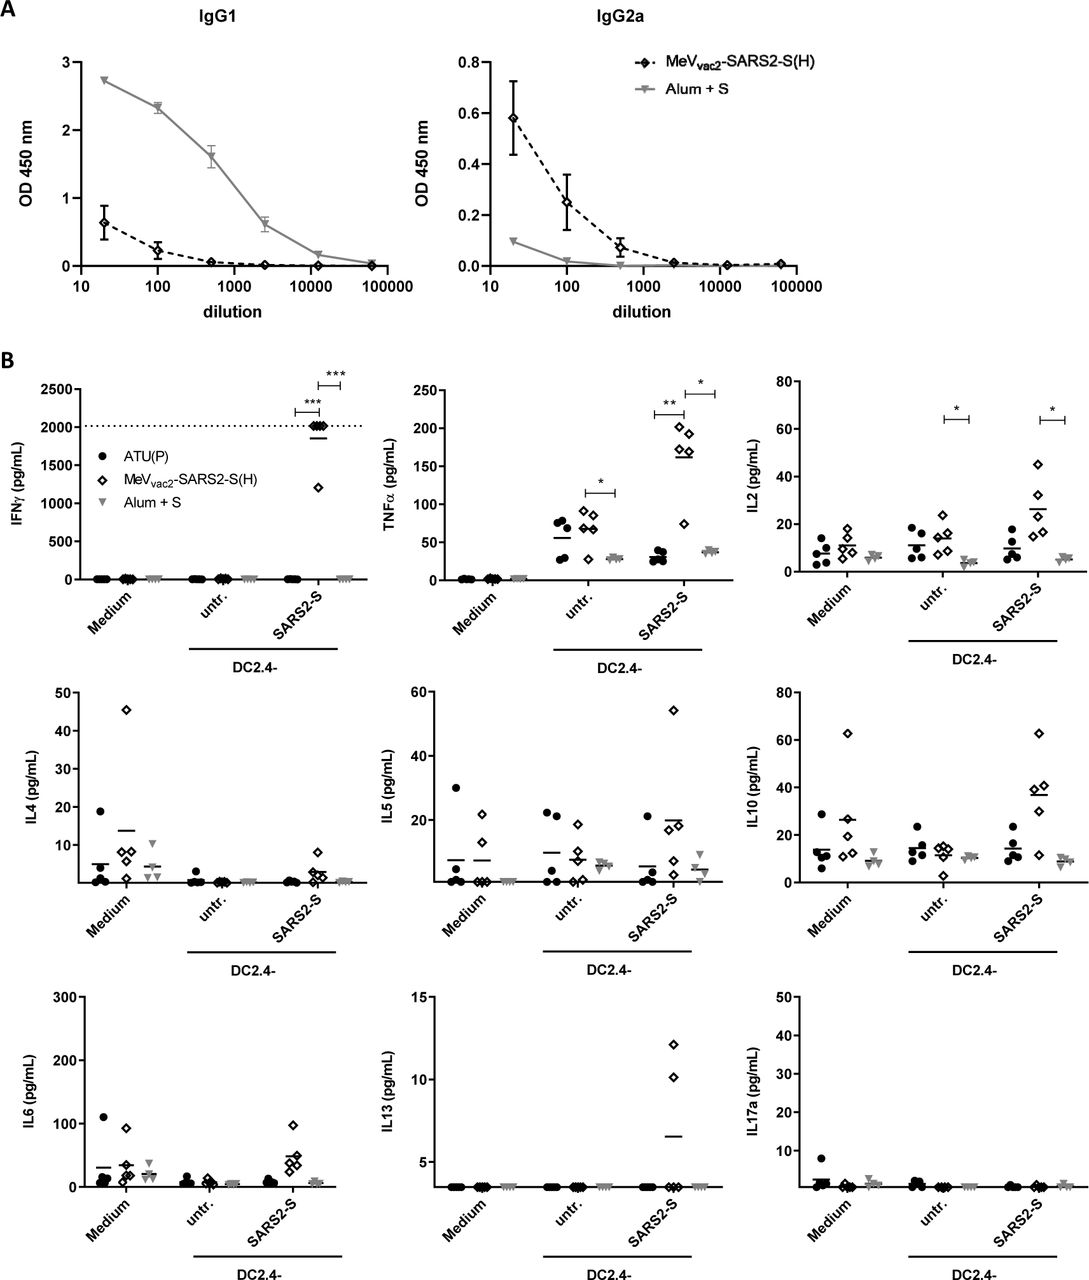 Immune bias of induced responses. To analyze skewing of immune responses towards Th1- or Th2-biased immunity ( A ) sera and ( B ) splenocytes of vaccinated mice depicted before were analyzed. ( A ) Sera of mice vaccinated on days 0 and 28 with MeV vac2 -SARS2-S(H) or Alum-adjuvanted S protein already shown in Fig. 2 were analysed for IgG1- or IgG2a-type antibodies specific for SARS-CoV-2 S. IgG1 (left panel) or IgG2a (right panel) binding to recombinant SARS-CoV S were determined by ELISA via the specific OD 450 nm value. Depicted are means and respective standard deviation of the mean (SEM) of each group (n = 5 - 6). ( B ) Splenocytes of the same mice already shown in Figs. 3 to 6 were analysed by multiplex cytokine analysis for secretion of typical marker cytokines in the supernatant after re-stimulation by co-culture with antigen-presenting DC2.4-SARS2-S cells. DC2.4 cells served as non-specific control stimulus. Dots represent individual animals, horizontal bars mean per group (n = 4 - 5). IFN-γ: upper limit of detection (ULOD): 2015.2 pg/mL; IL-6: ULOD: 3992,4 pg/mL; IL-17a lower limit of detection (LLOD): 0.473 pg/mL; IL-4 LLOD: 0.095 pg/mL; IL-5 LLOD: 0.685 pg/mL; IL-13 LLOD: 3.463 pg/mL. For statistical analysis of grouped multiplex data, two-way ANOVA analysis was applied with paired Tukey's Multi comparison test as post hoc test. *, p